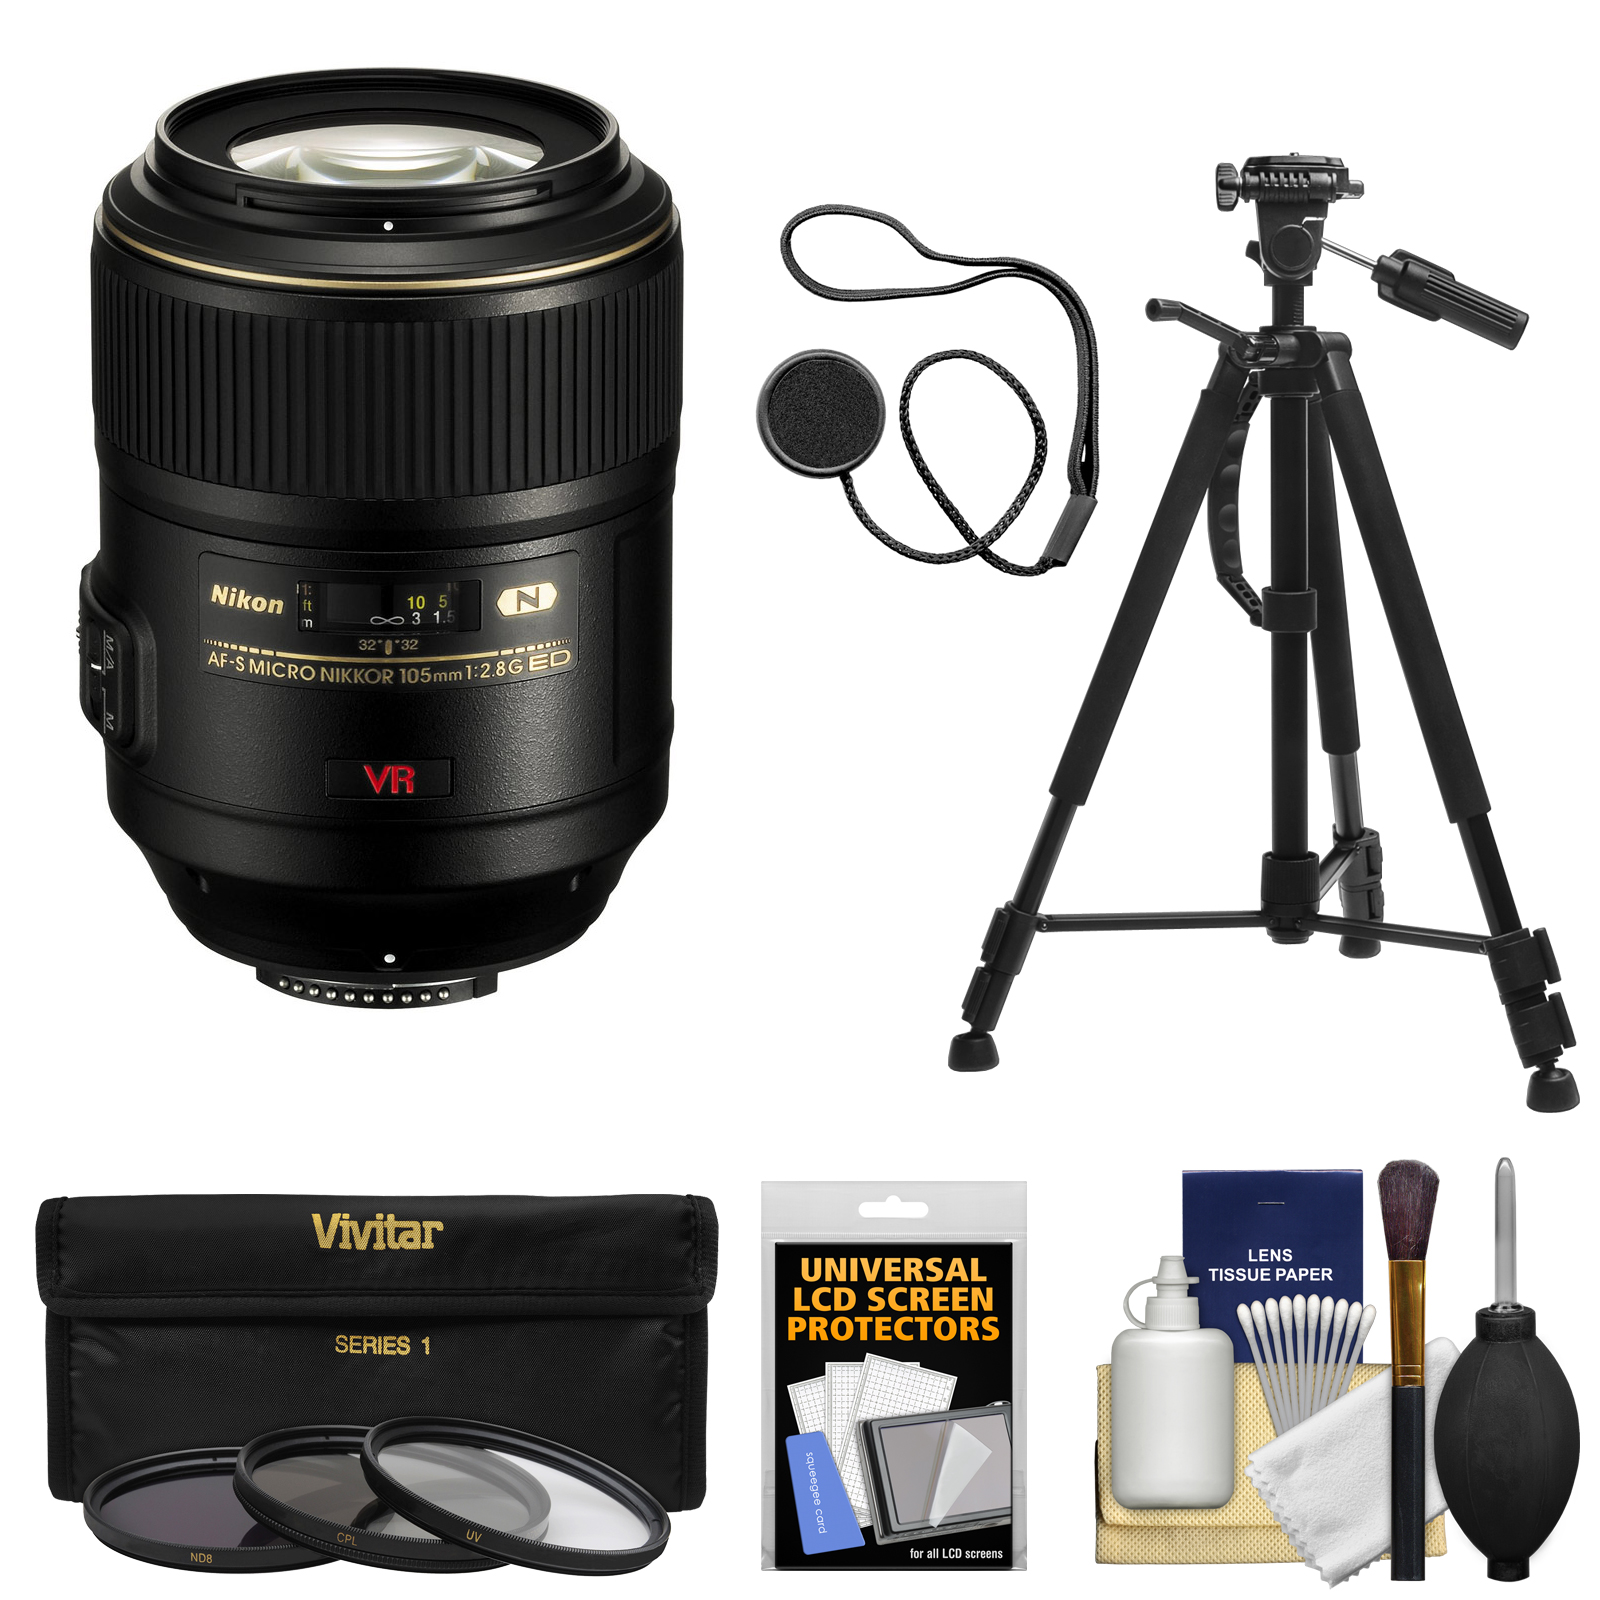 Nikon 105mm f/2.8 G VR AF-S Micro-Nikkor Lens with 3 Filters + Tripod + Kit for D3200, D3300, D5300, D5500, D7100, D7200, D610, D750, D810, D4s Camera